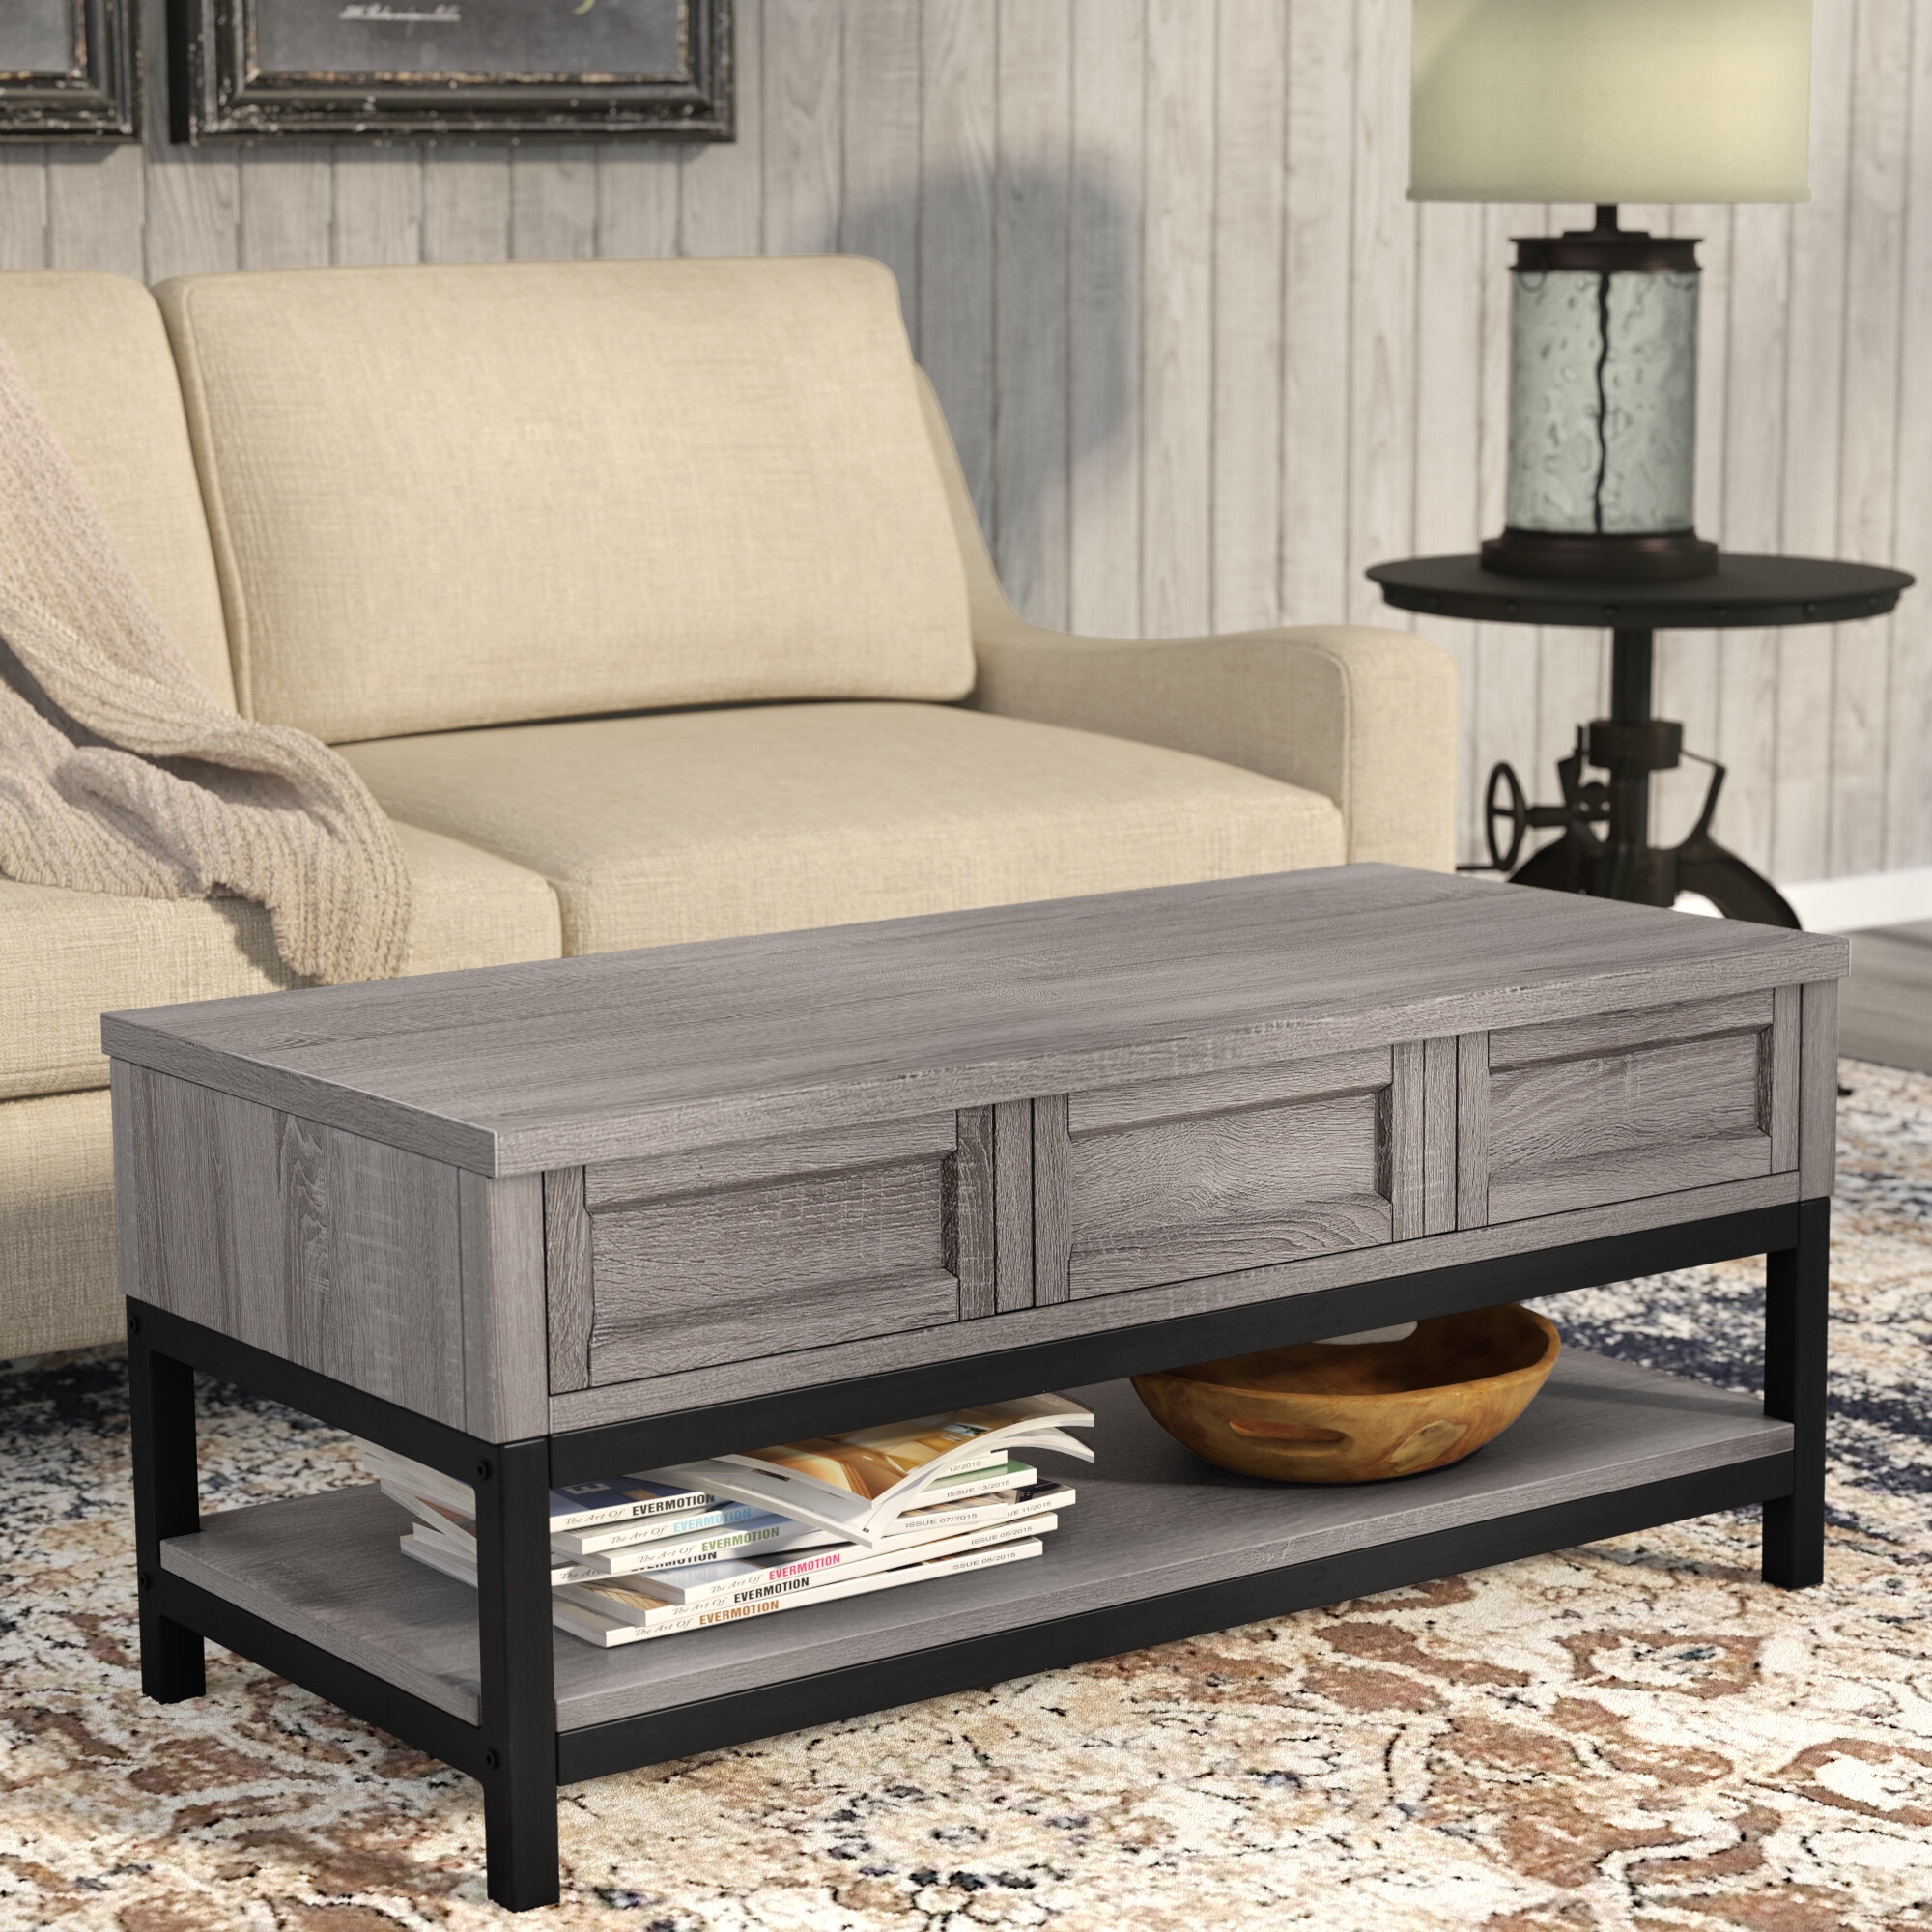 Coffee Table Pick Up Line.Laurel Foundry Modern Farmhouse Omar Lift Top Coffee Table Reviews